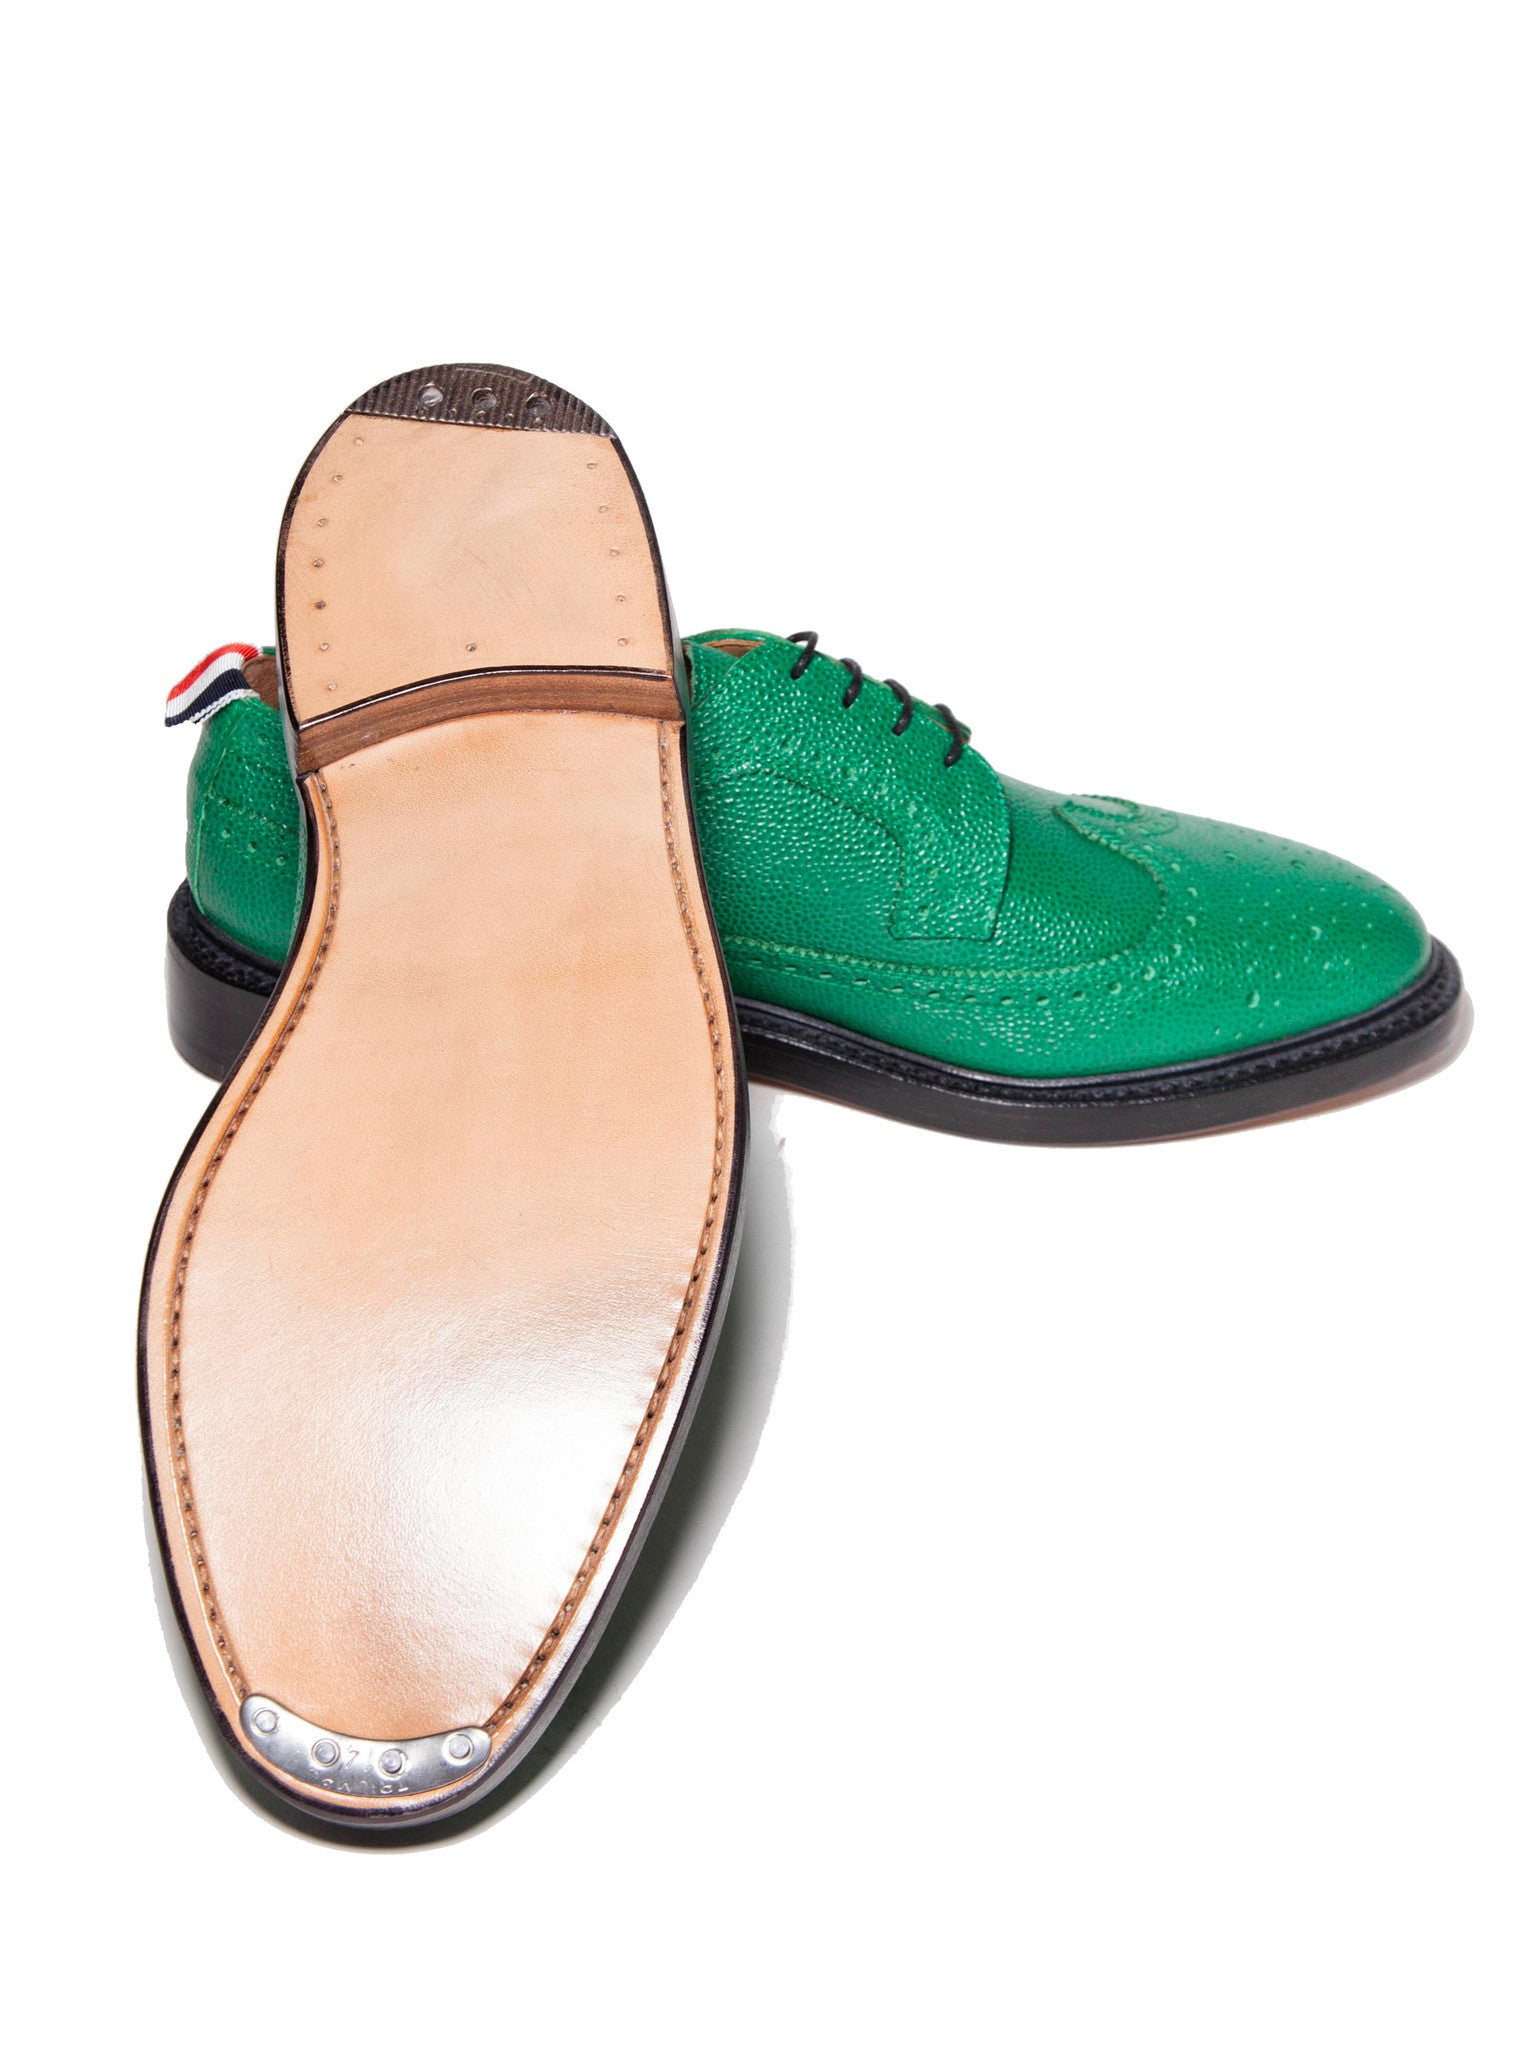 Dark Green Classic Longwing (Leather Sole/Pebble Grain) 4